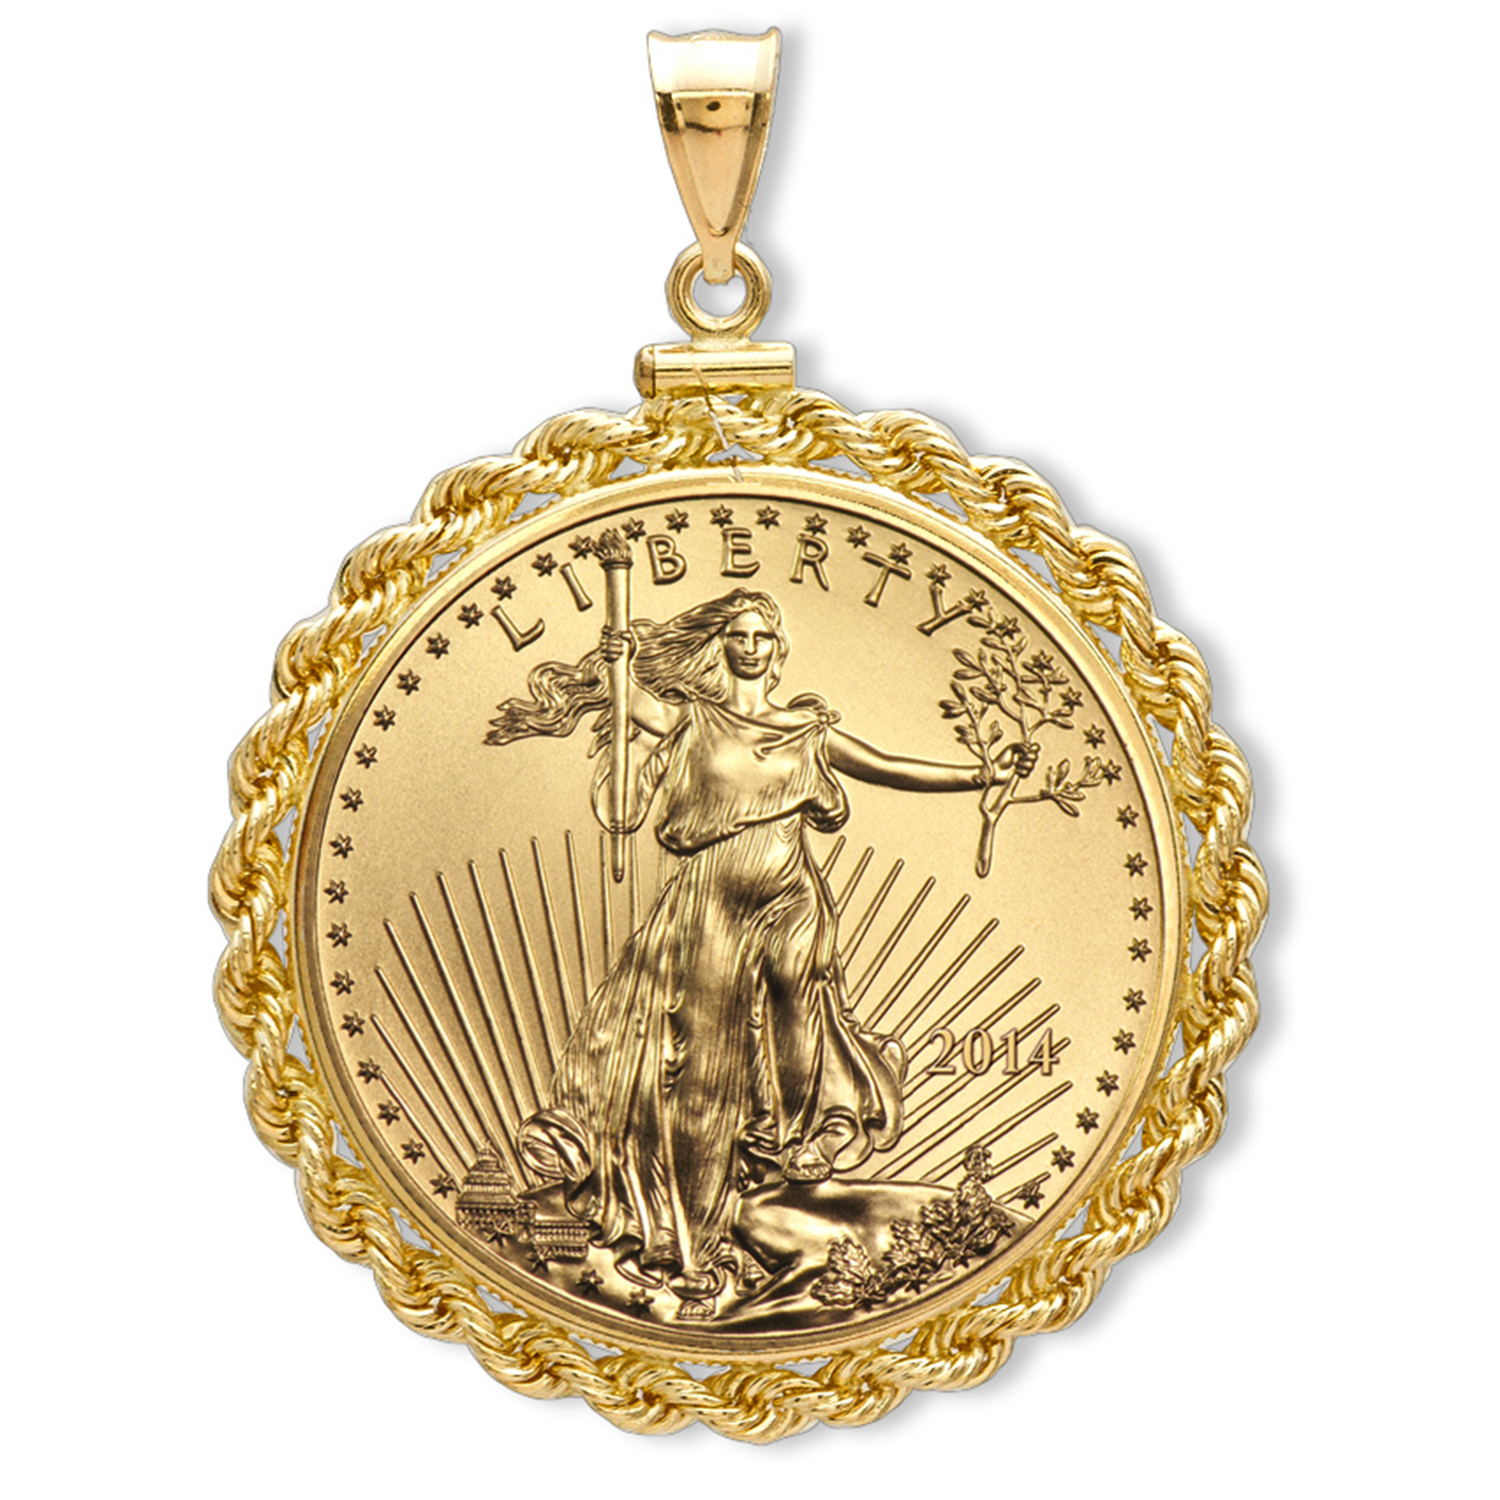 2014 1/4 oz Gold Eagle Pendant (Rope-ScrewTop Bezel)